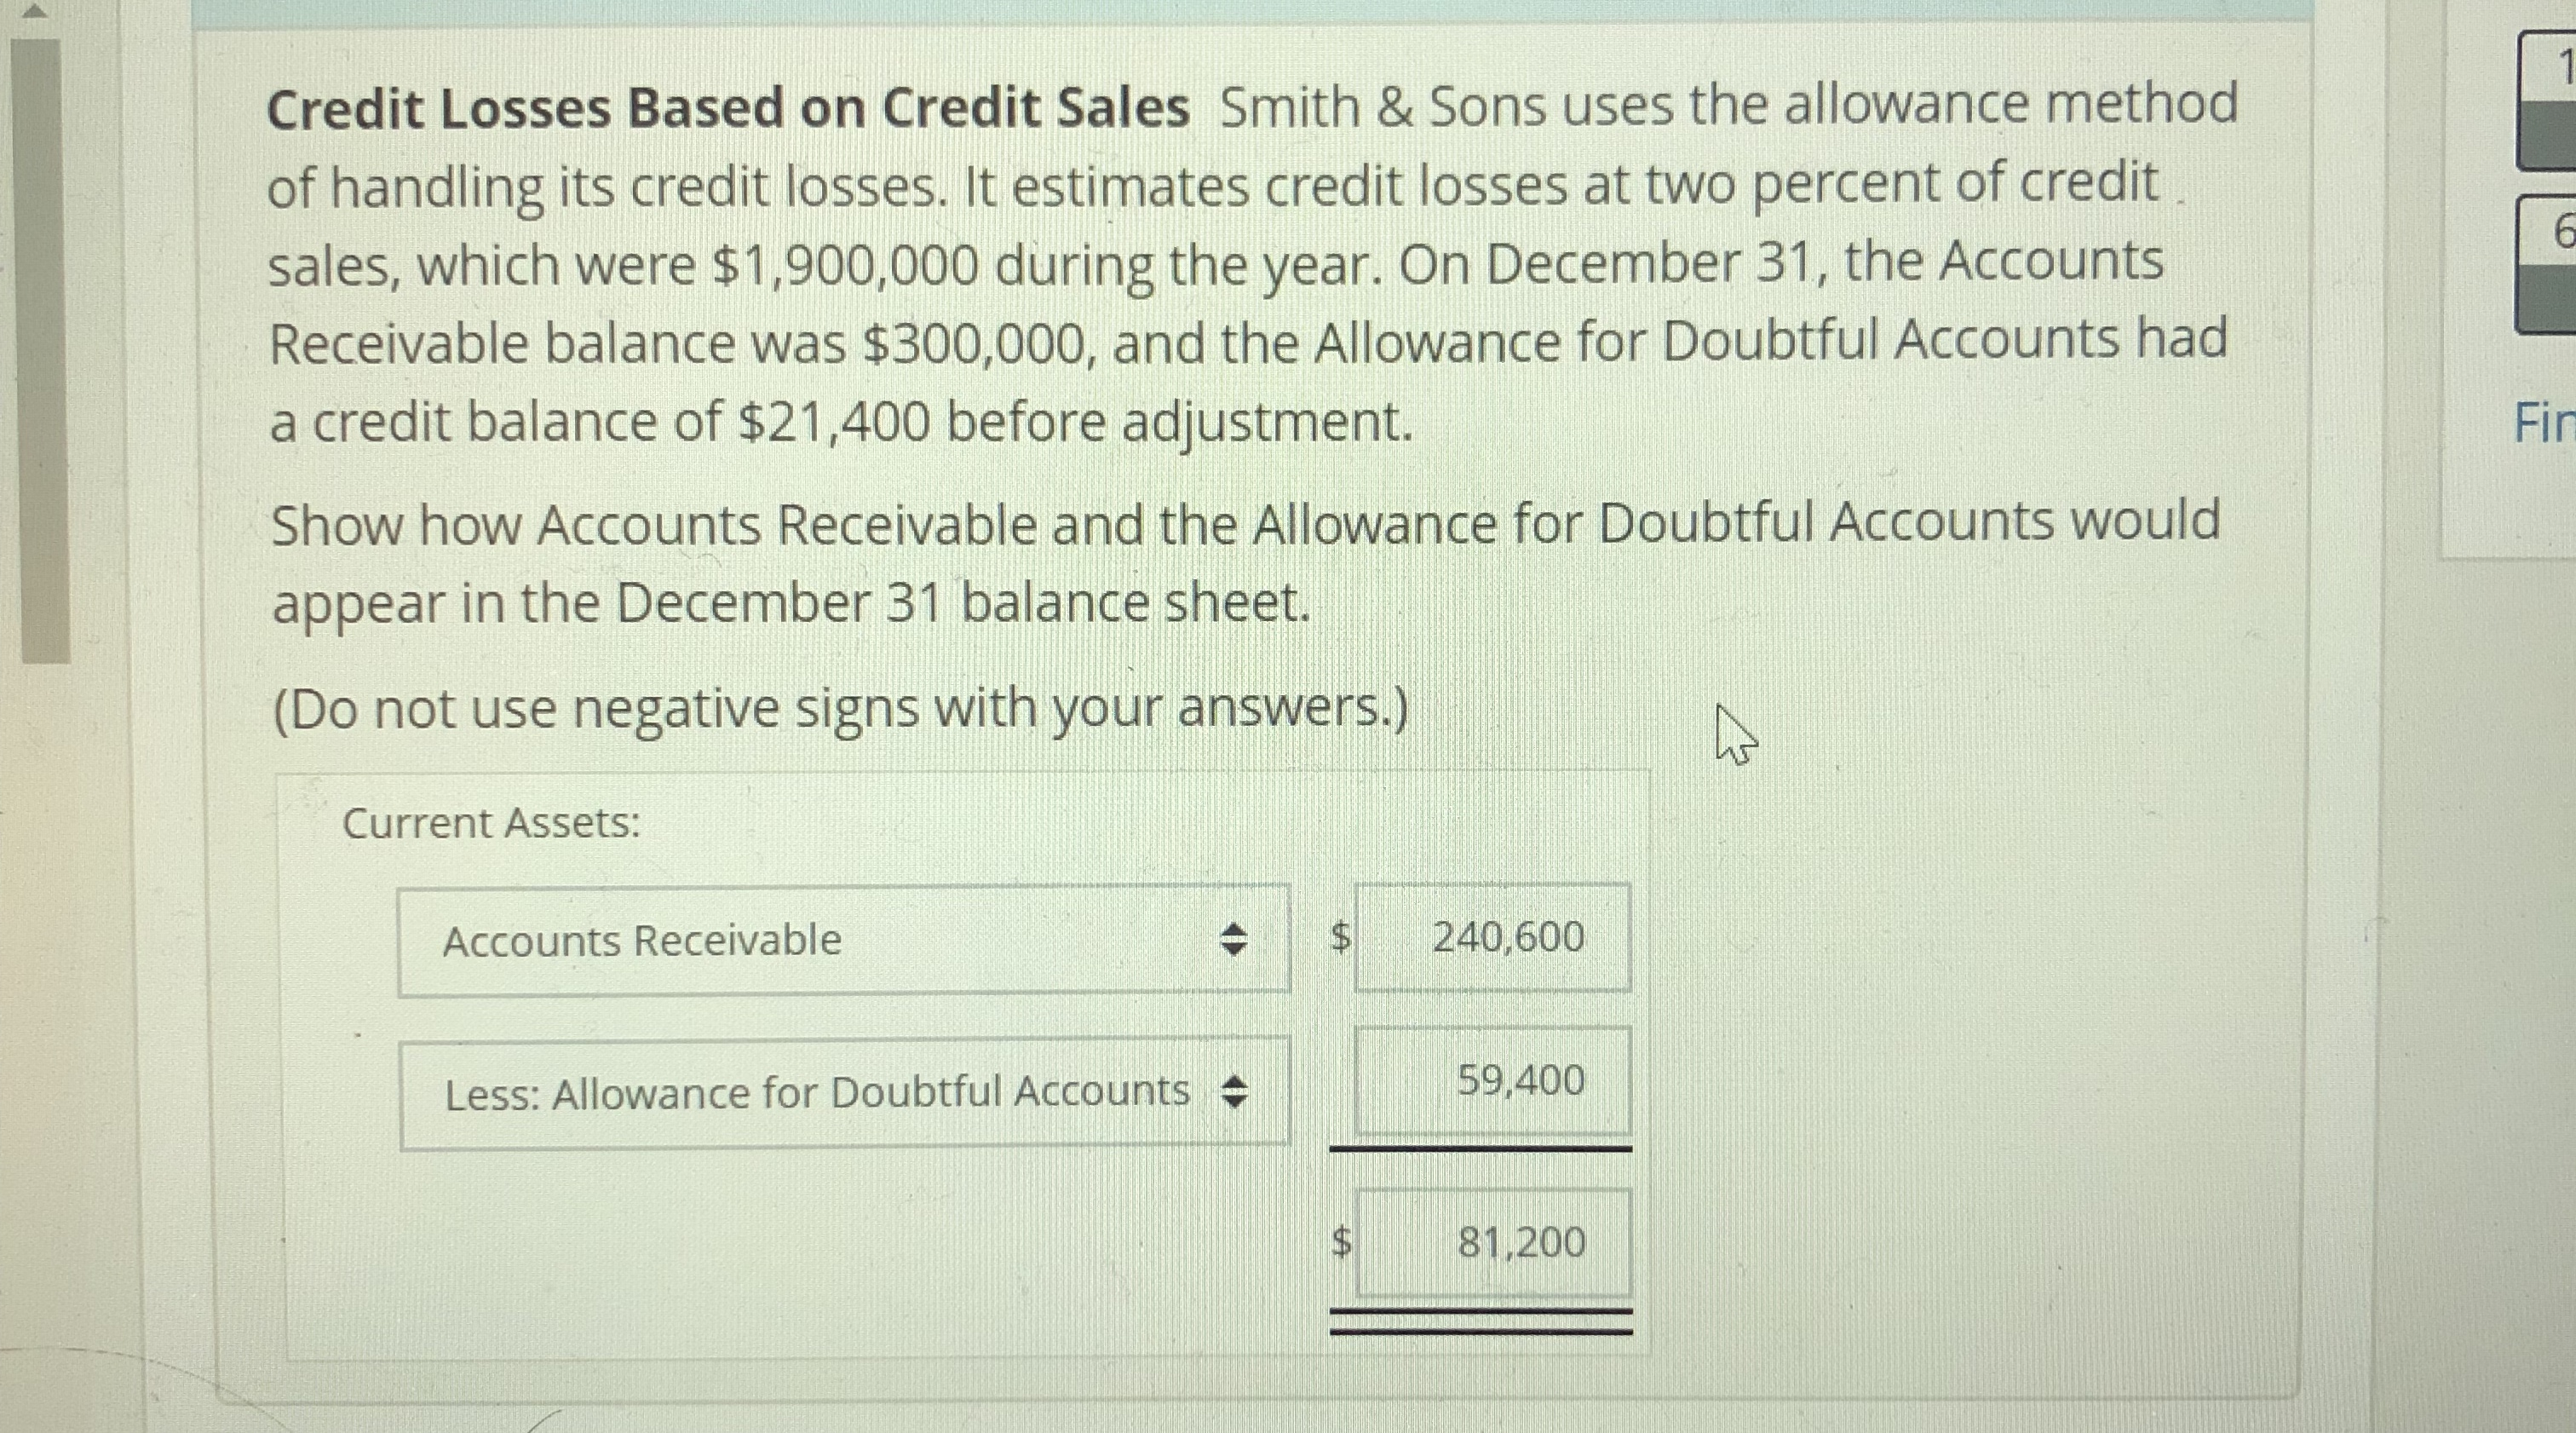 Credit Losses Based on Credit Sales Smith & Sons uses the allowance method of handling its credit losses. It estimates credit losses at two percent of credit sales, which were $1,900,000 during the year. On December 31, the Accounts Receivable balance was $300,000, and the Allowance for Doubtful Accounts had a credit balance of $21,400 before adjustment. Show how Accounts Receivable and the Allowance for Doubtful Accounts would appear in the December 31 balance sheet. (Do not use negative signs with your answers.) Fin Current Assets: Accounts Receivable $ 240,600 eli-LE9,400 Less: Allowance for Doubtful Accounts $81.200